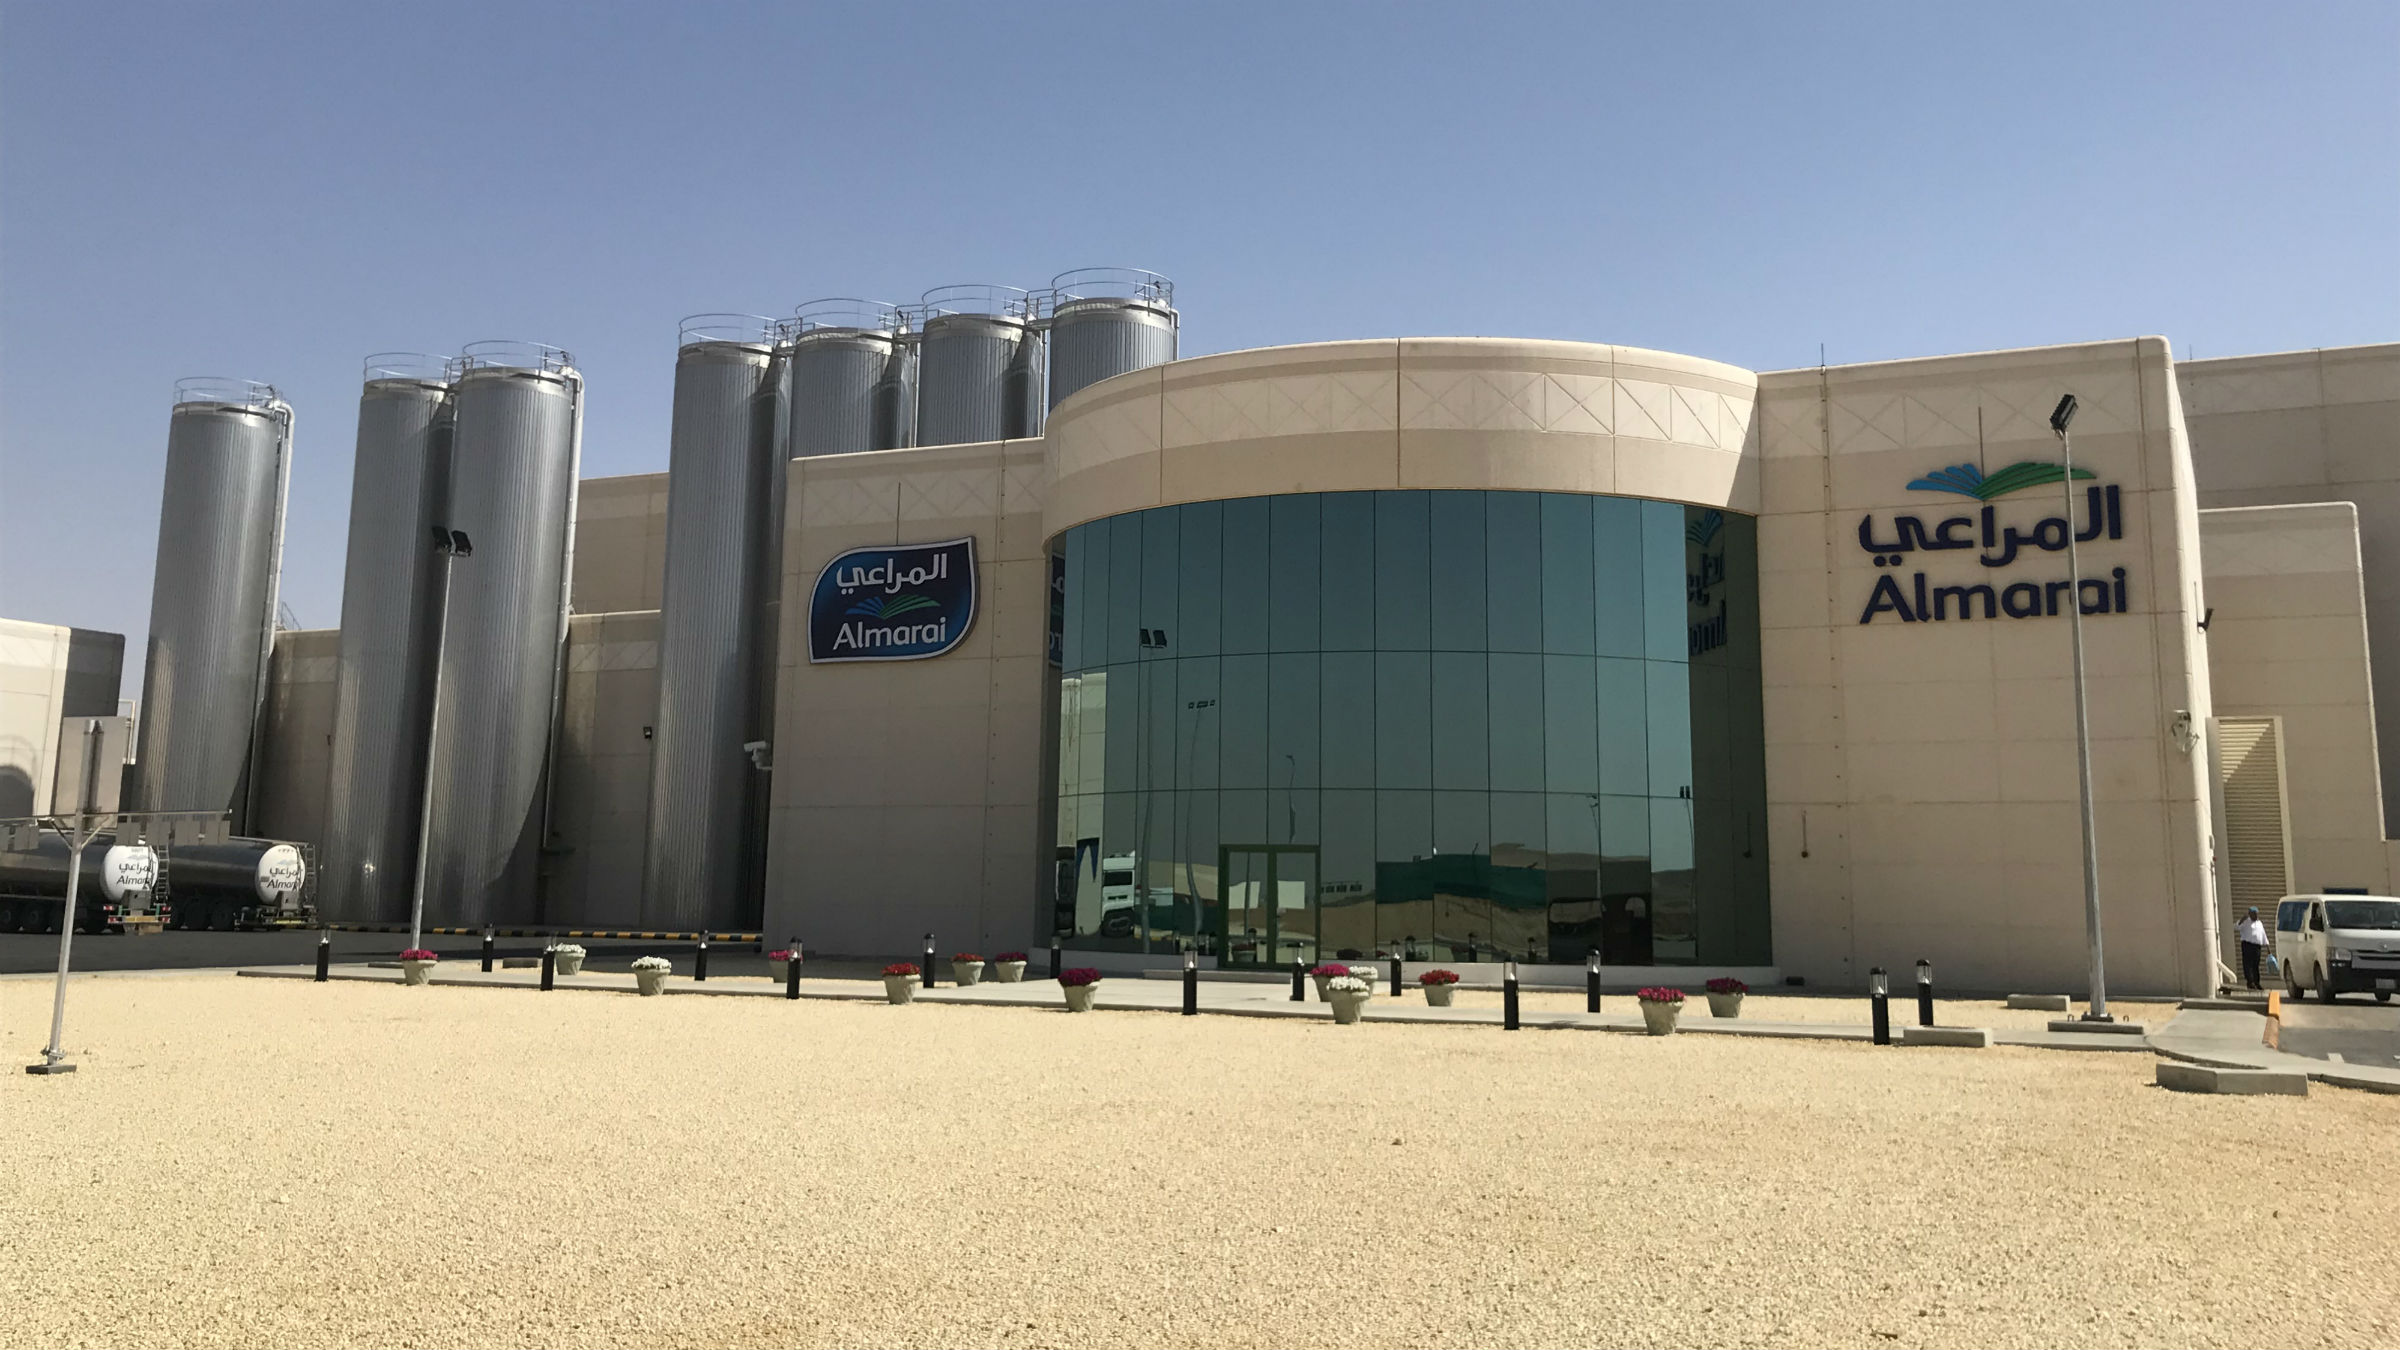 The Almarai plant at Al Kharj in Saudi Arabia